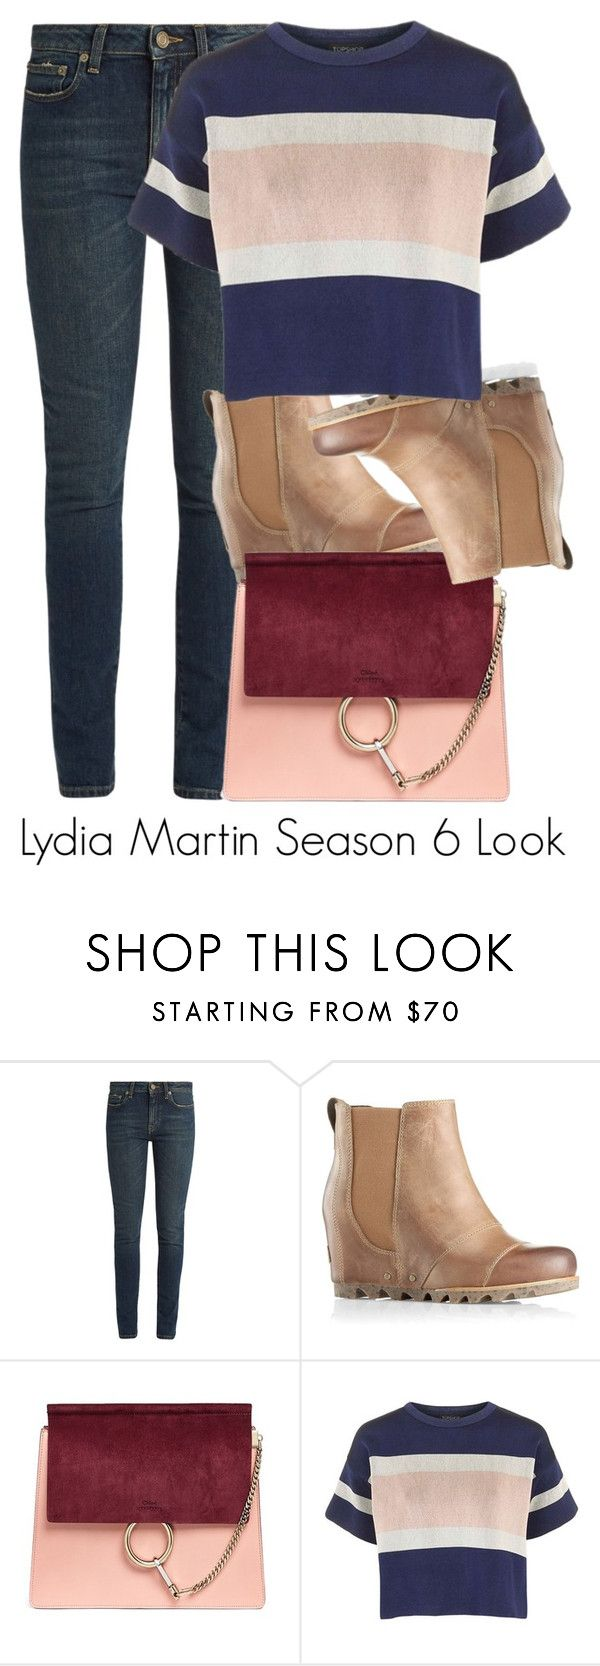 """""""Lydia Martin Season 6 Look"""" by tynestar ❤ liked on Polyvore featuring Yves Saint Laurent, SOREL, Chloé and Topshop"""